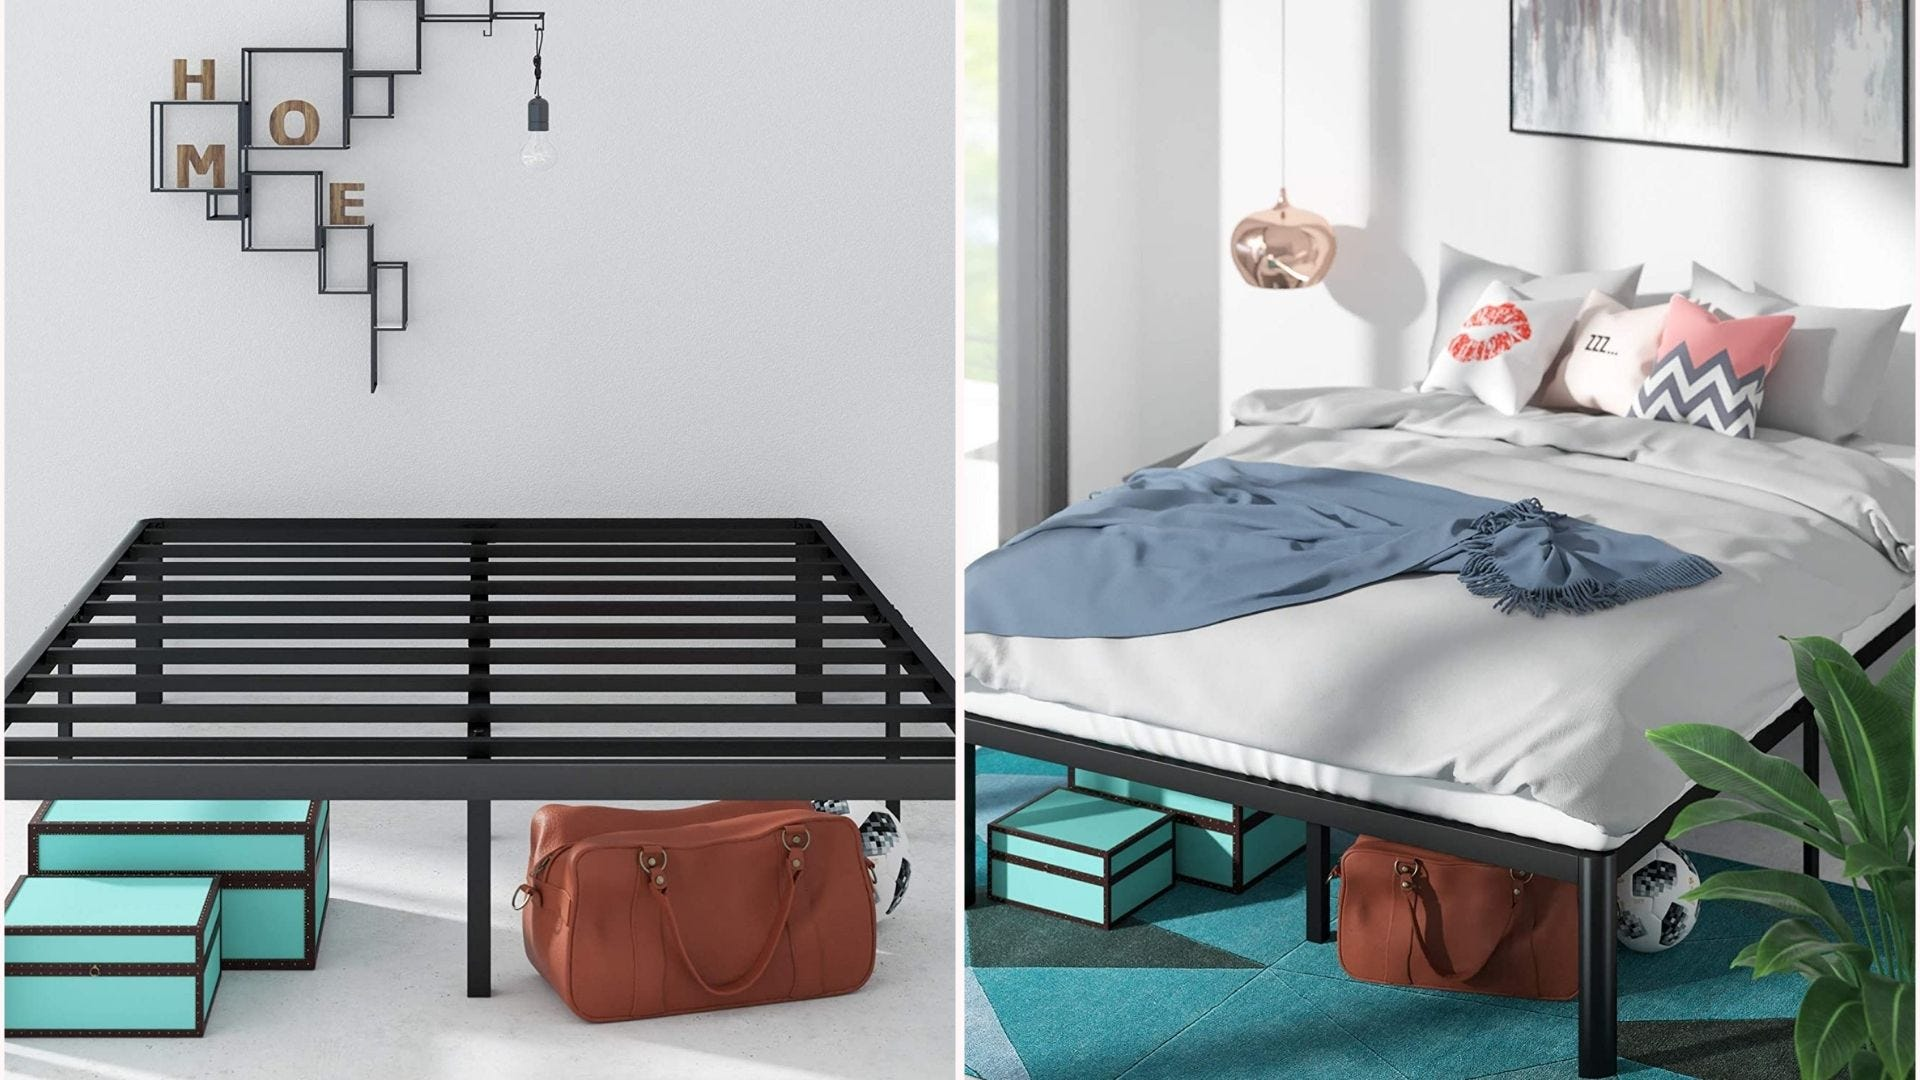 a black metal platform bed frame shown with and without a mattress in a bedroom